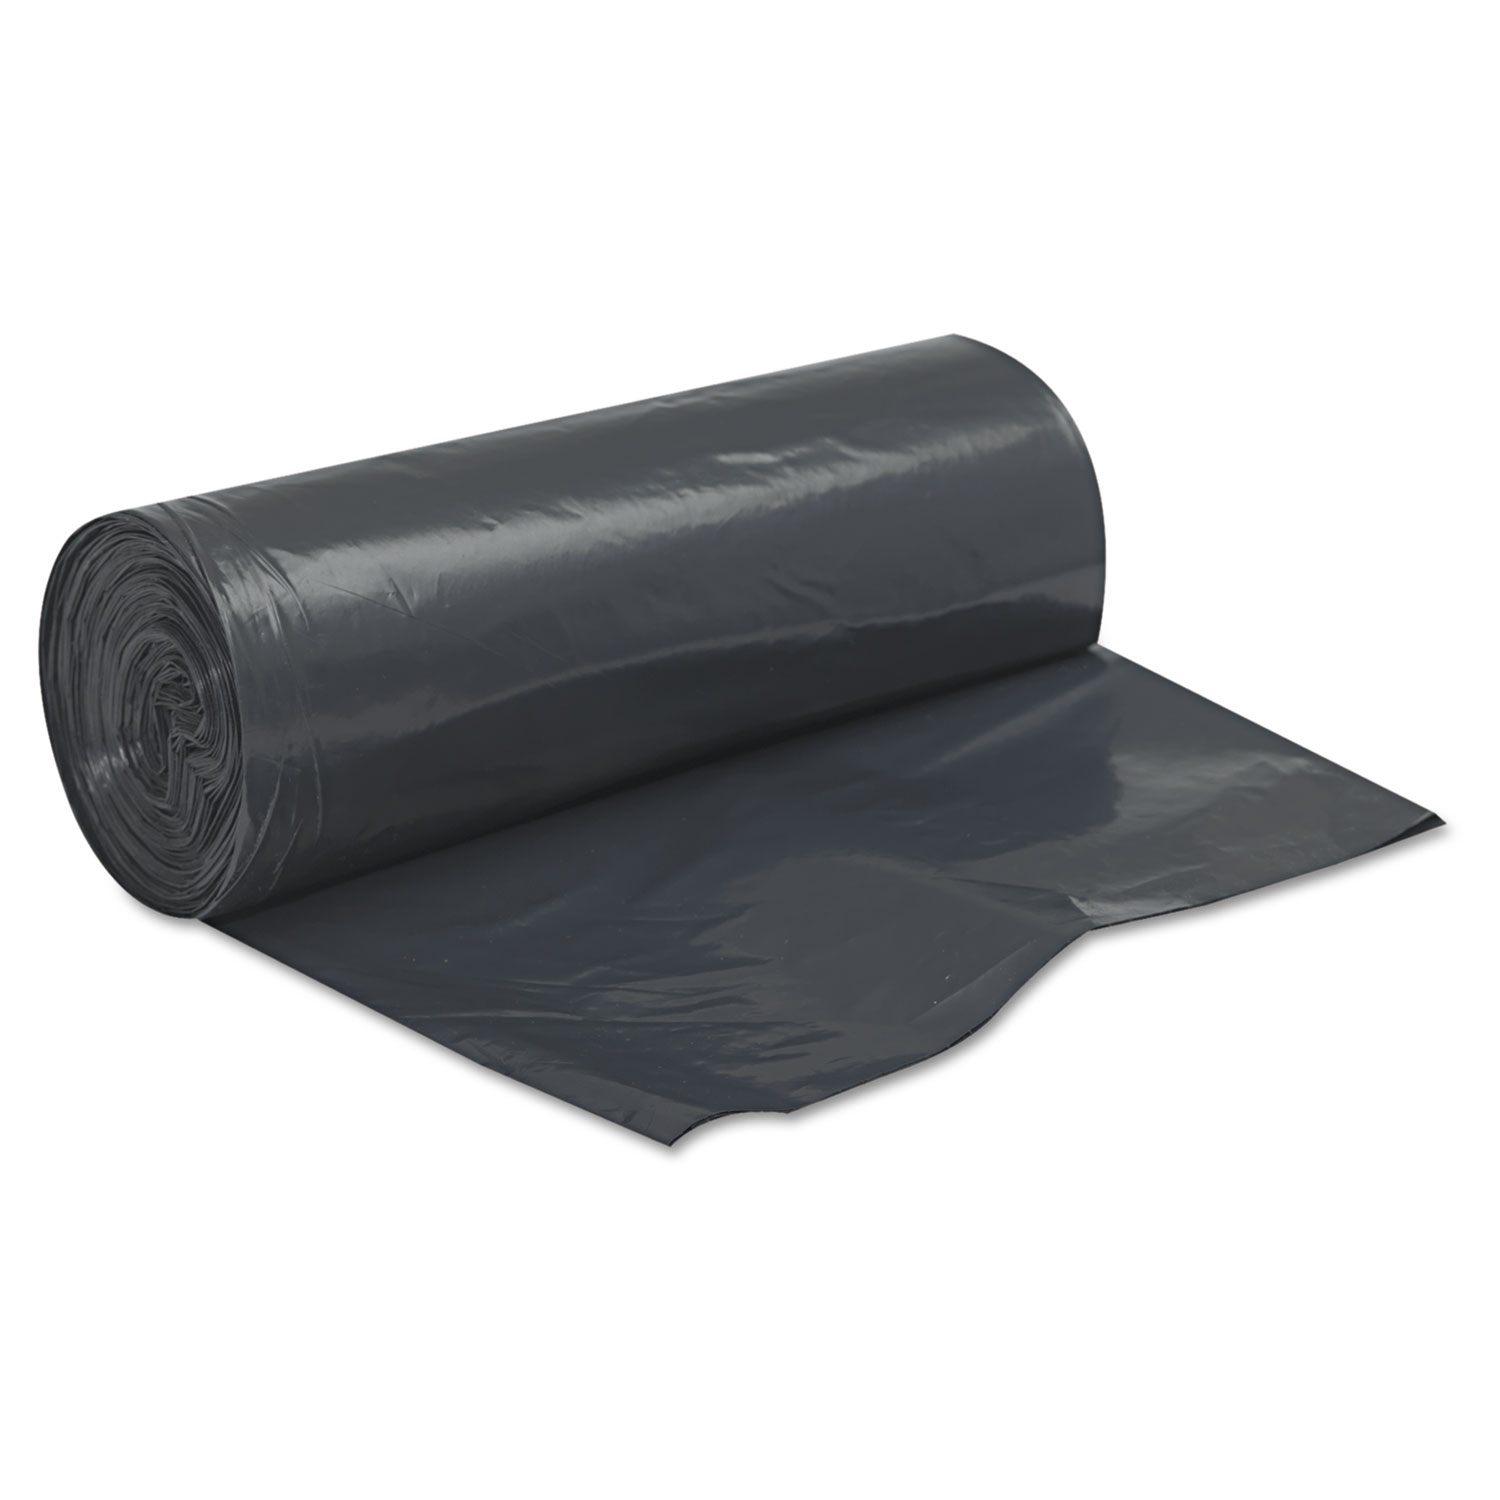 "Linear Low Density Can Liners, 60 gal, 2 mil, 38"" x 58"", Black, 100/Carton"